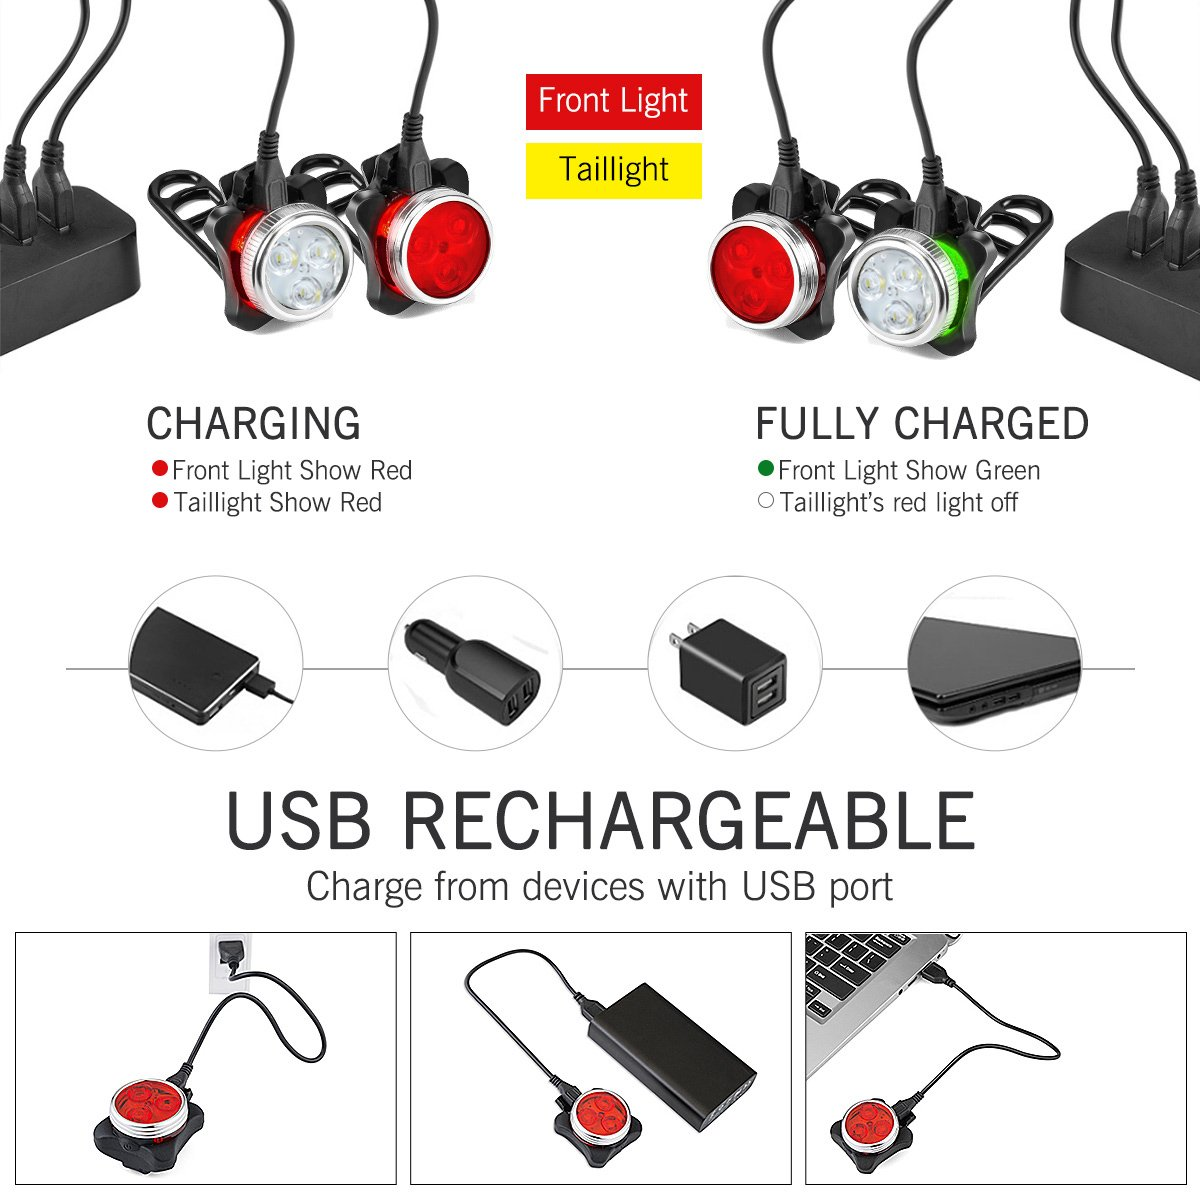 SOKLIT USB Rechargeable Bike Light Front and Rear Waterproof IPX4 Super Bright Bicycle LED Light Set 120 Lumen with 650mah Lithium Battery, 4 Light Mode Options, Including 6 Strap and 2 USB Cables by SOKLIT (Image #4)